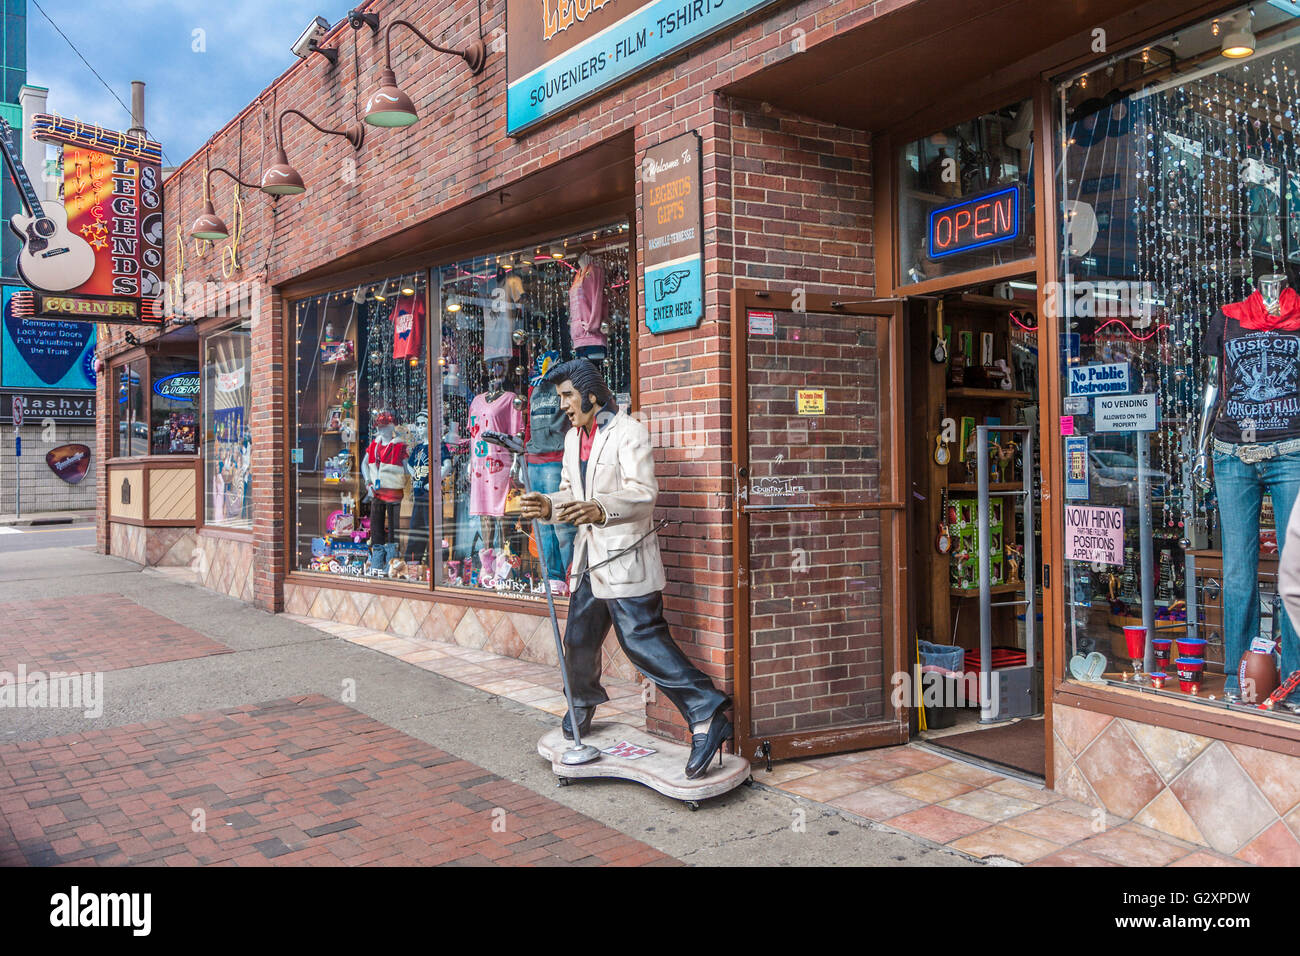 Statue of Elvis Presley on sidewalk outside of Legends Gifts store on Broadway in downtown Nashville, Tennessee - Stock Image